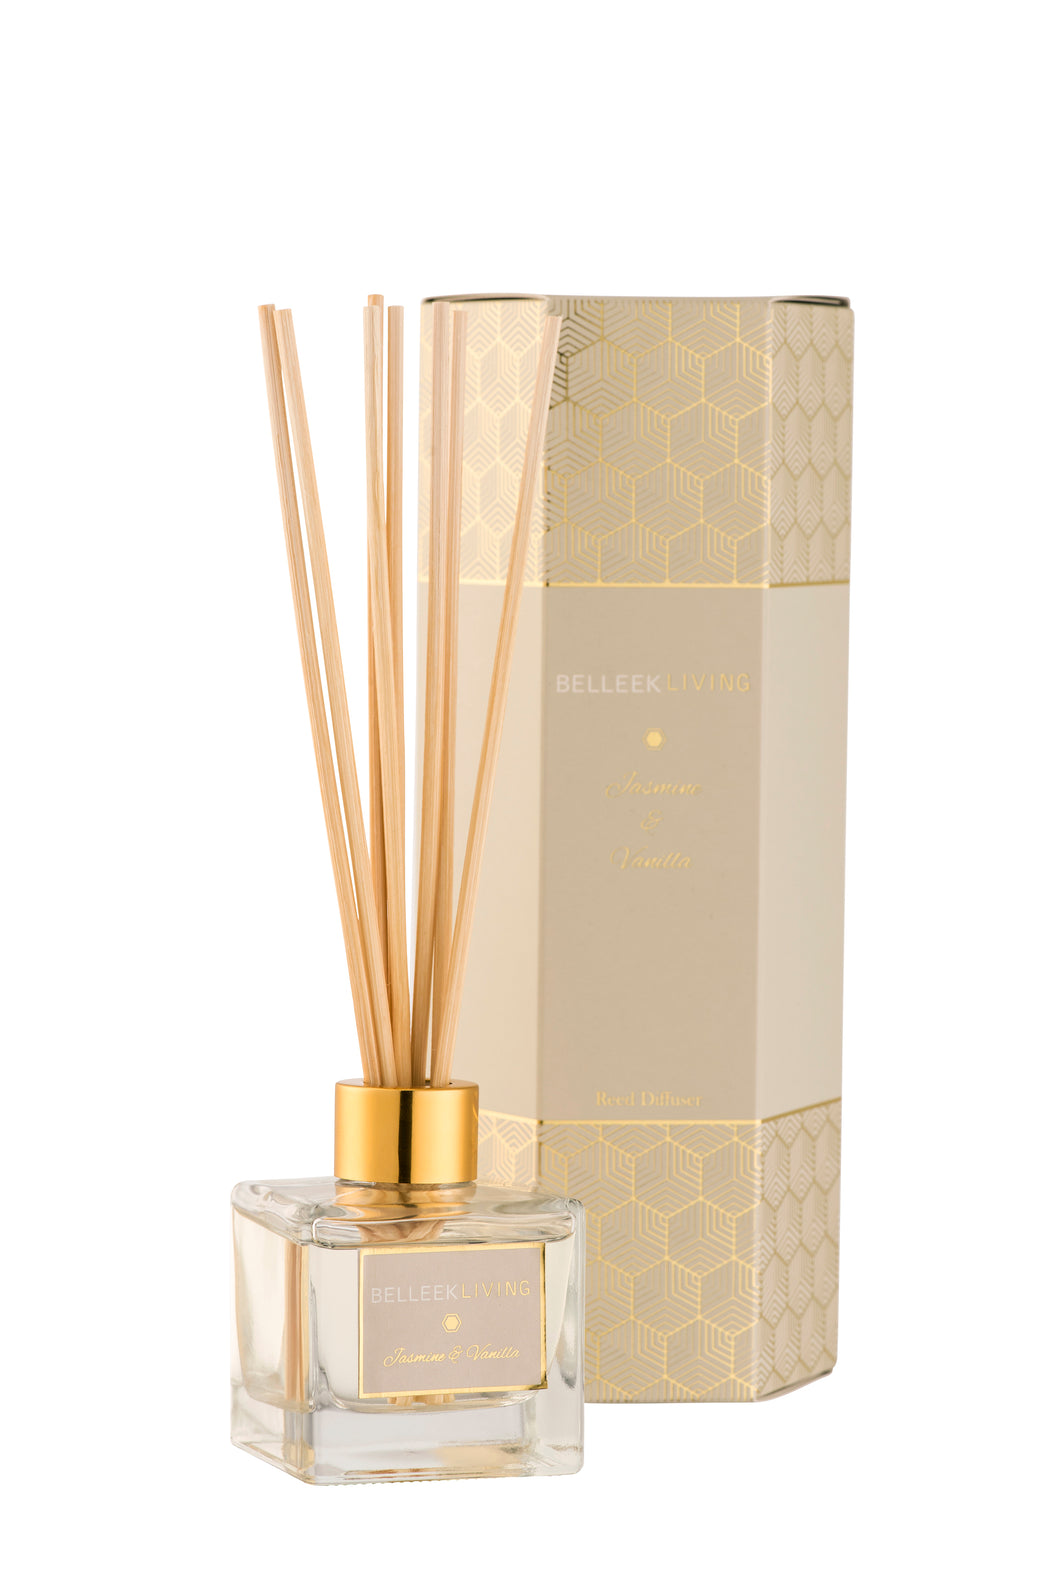 Belleek - Belleek Living Jasmine and Vanilla Diffuser